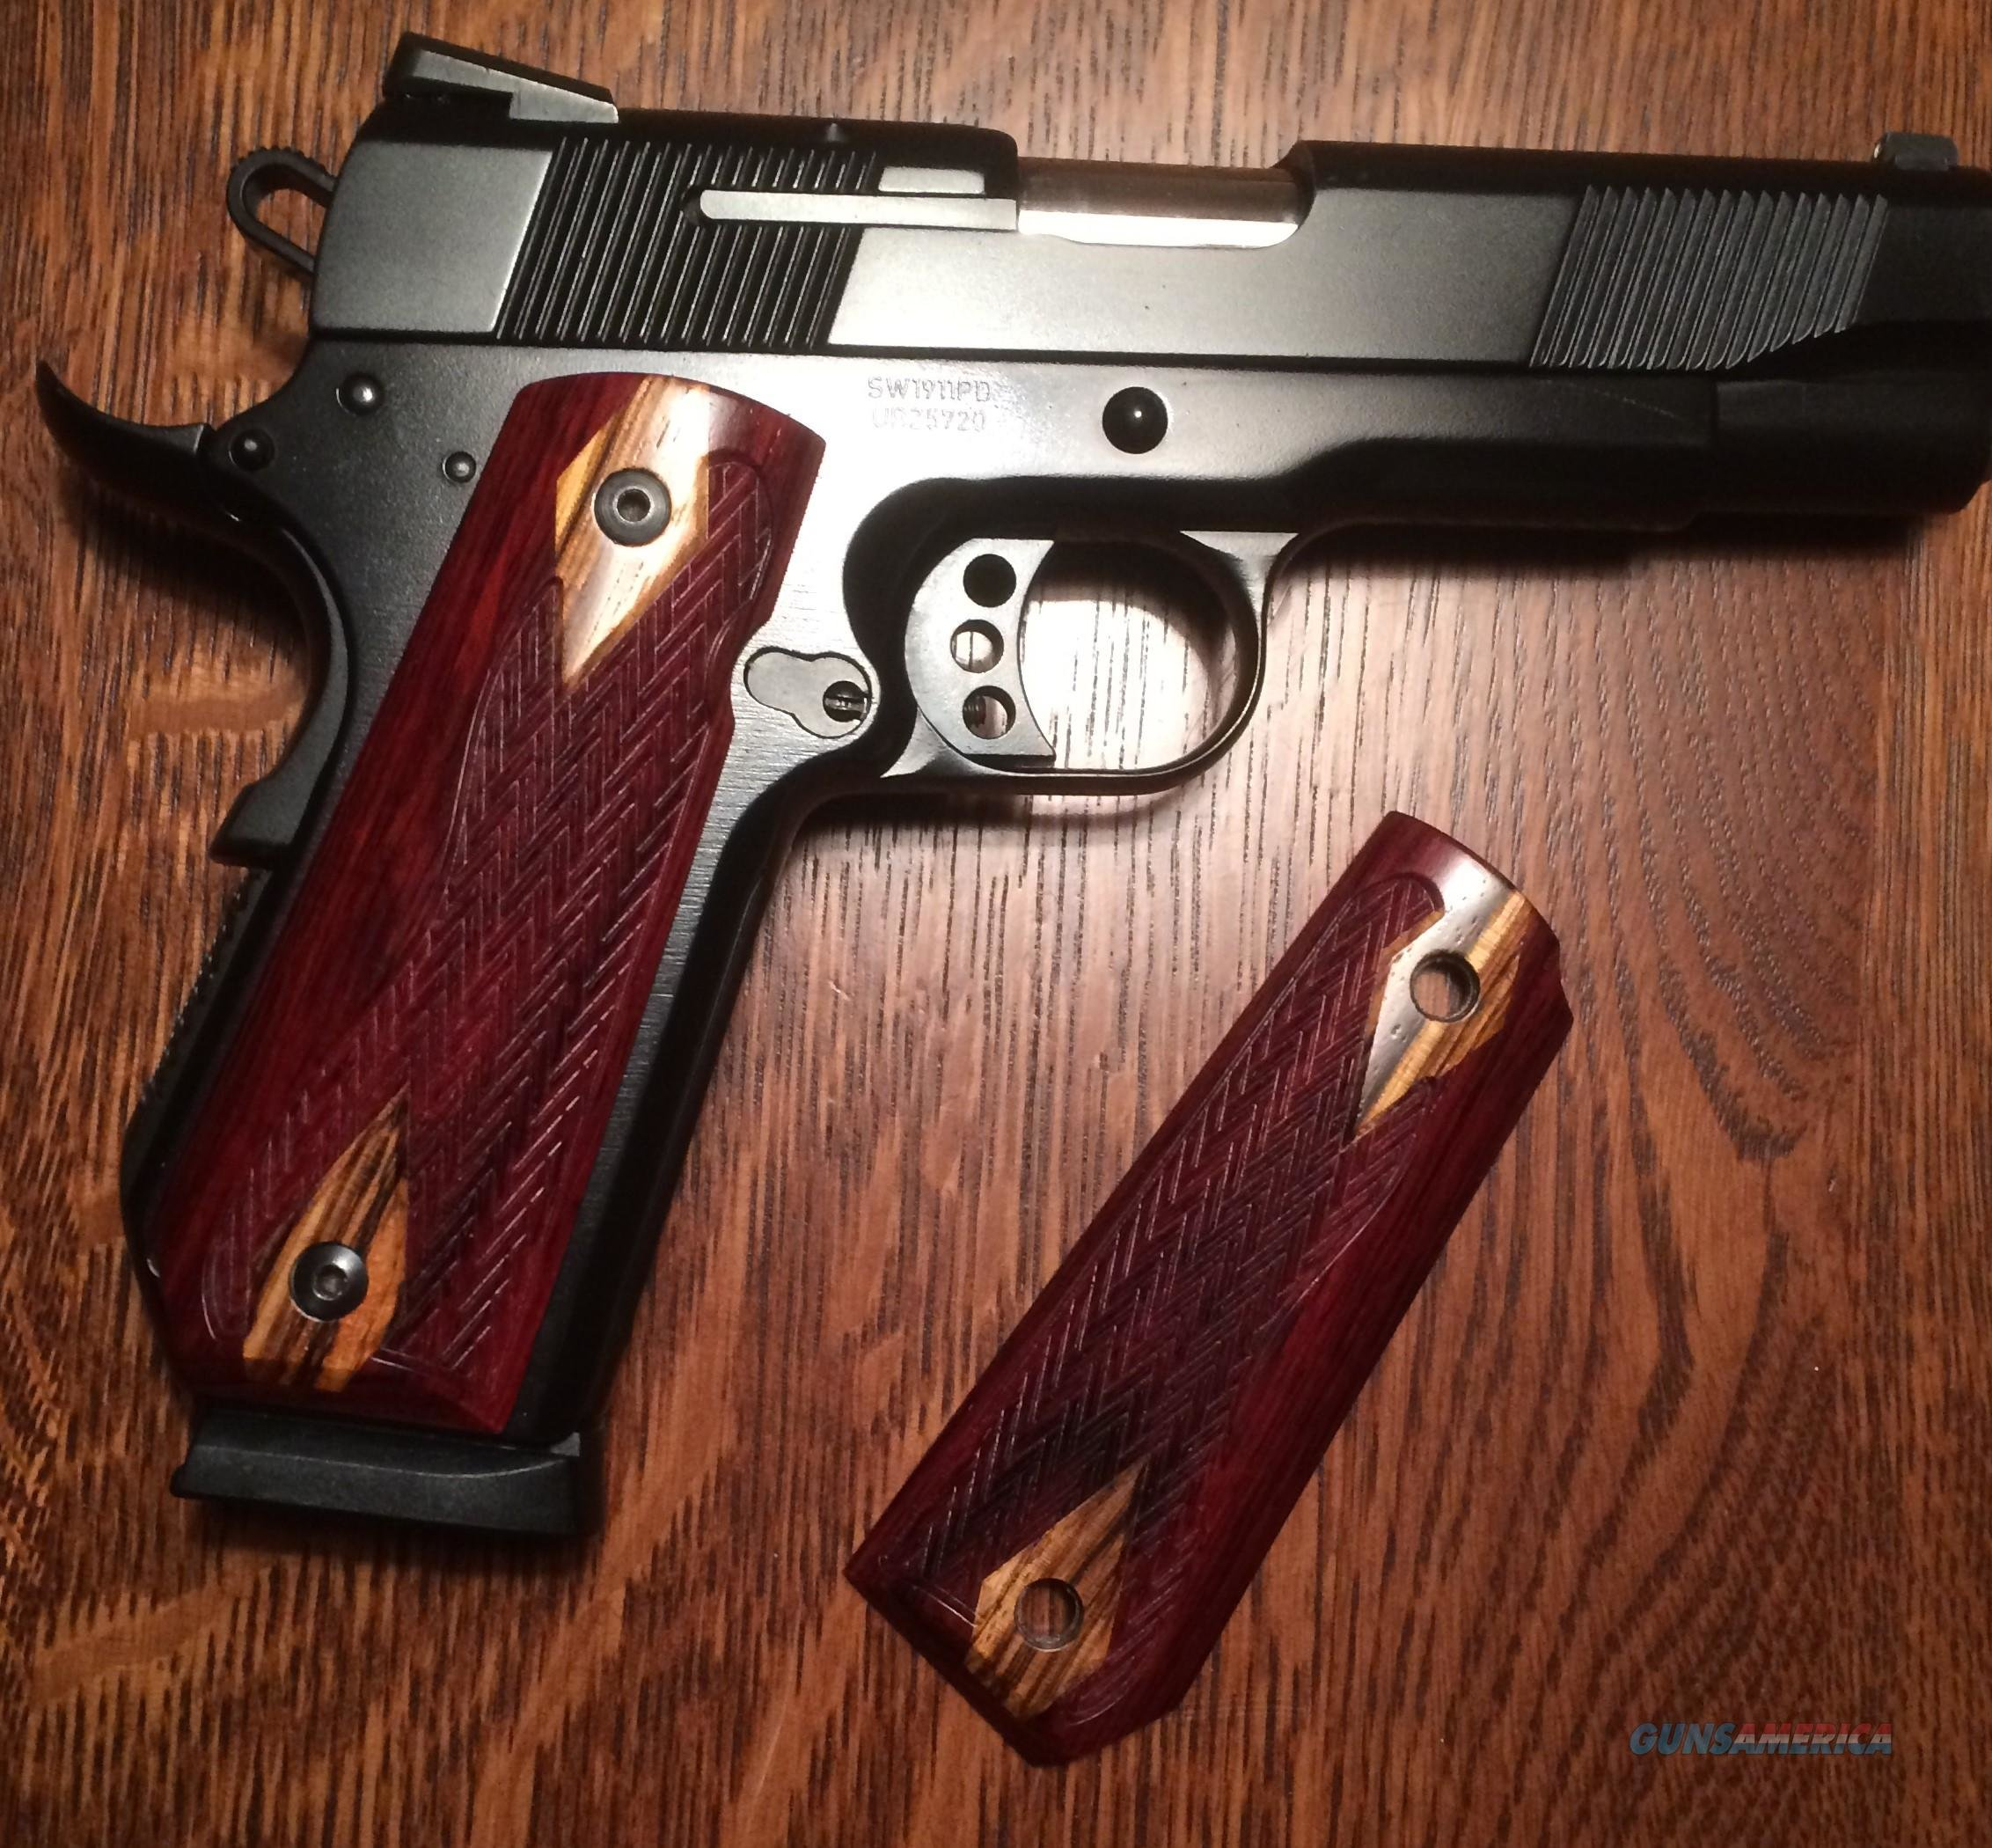 Springfield Armory Springfield EMP with Crimson trace grips and VZ's 9mm   Guns > Pistols > Springfield Armory Pistols > 1911 Type